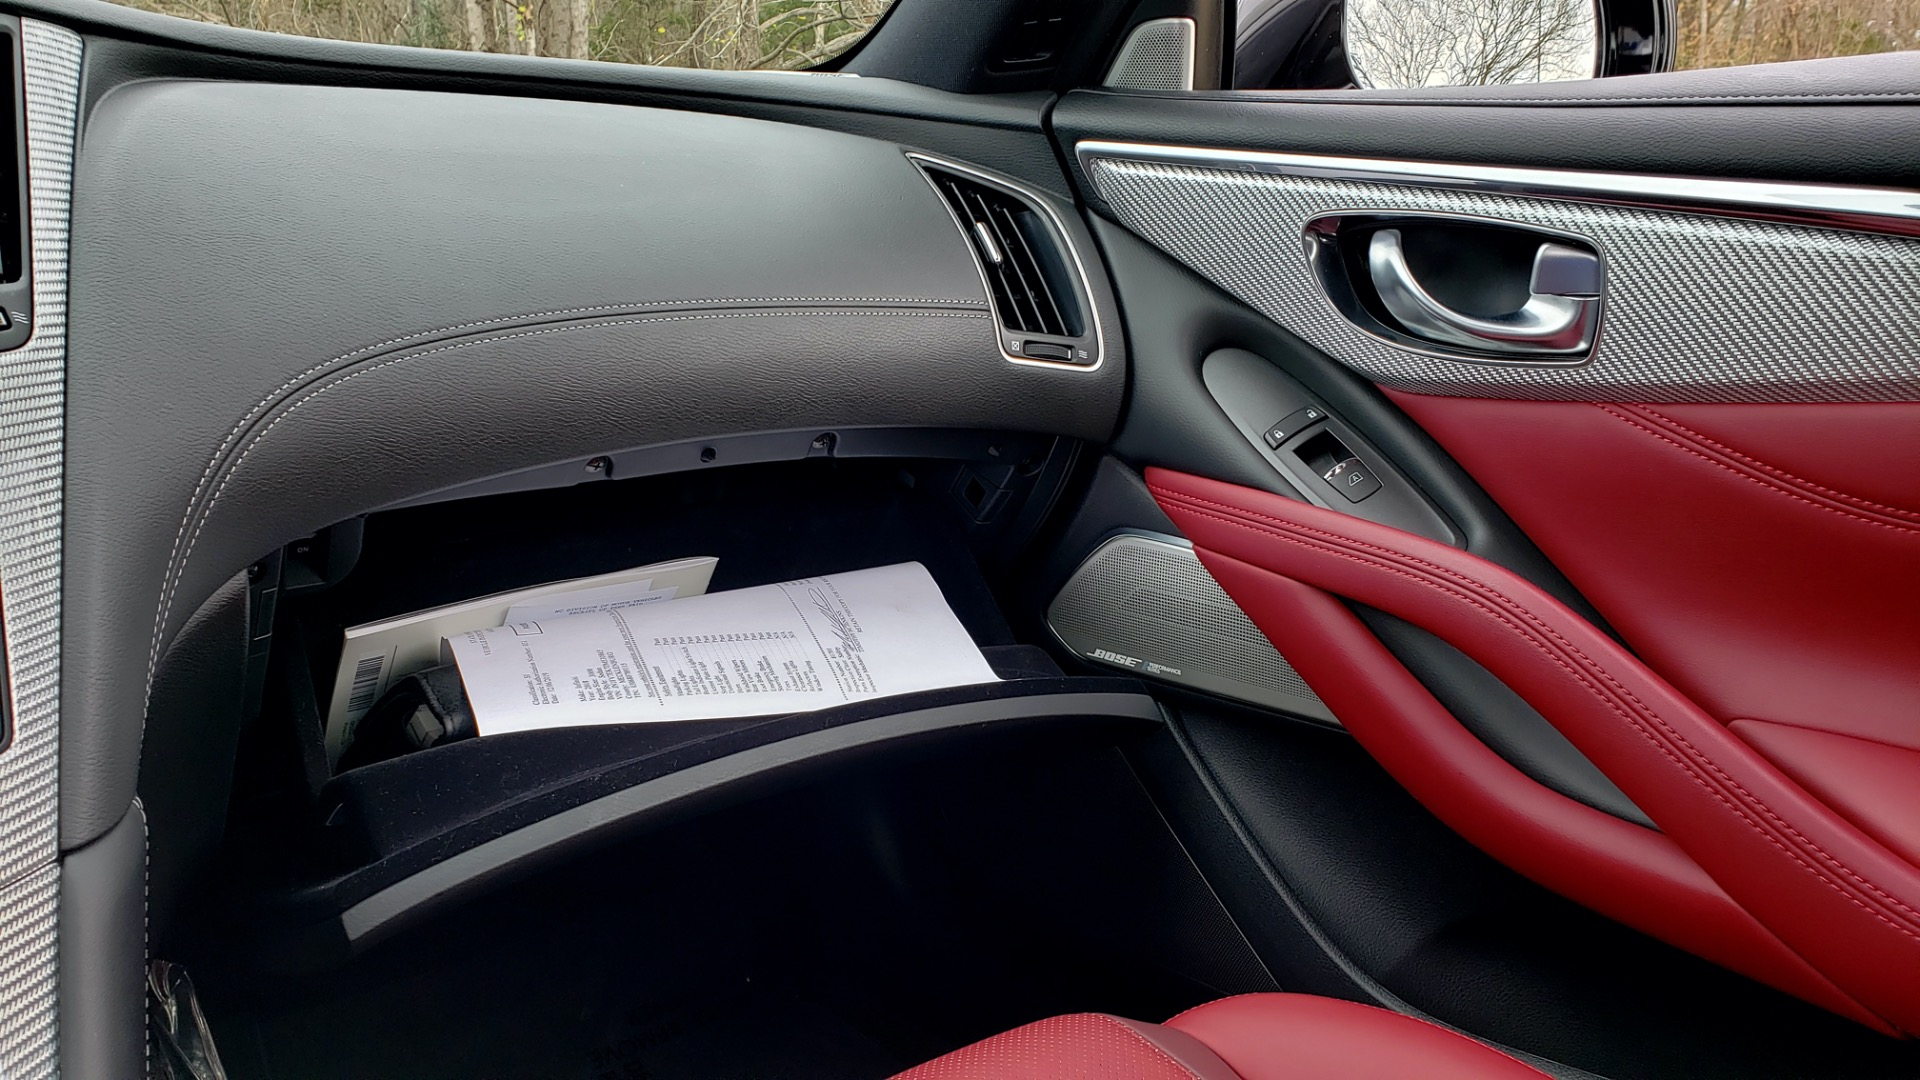 Used 2018 INFINITI Q60 RED SPORT 400 / SENSORY PKG / SUNROOF / NAV / REARVIEW for sale Sold at Formula Imports in Charlotte NC 28227 54